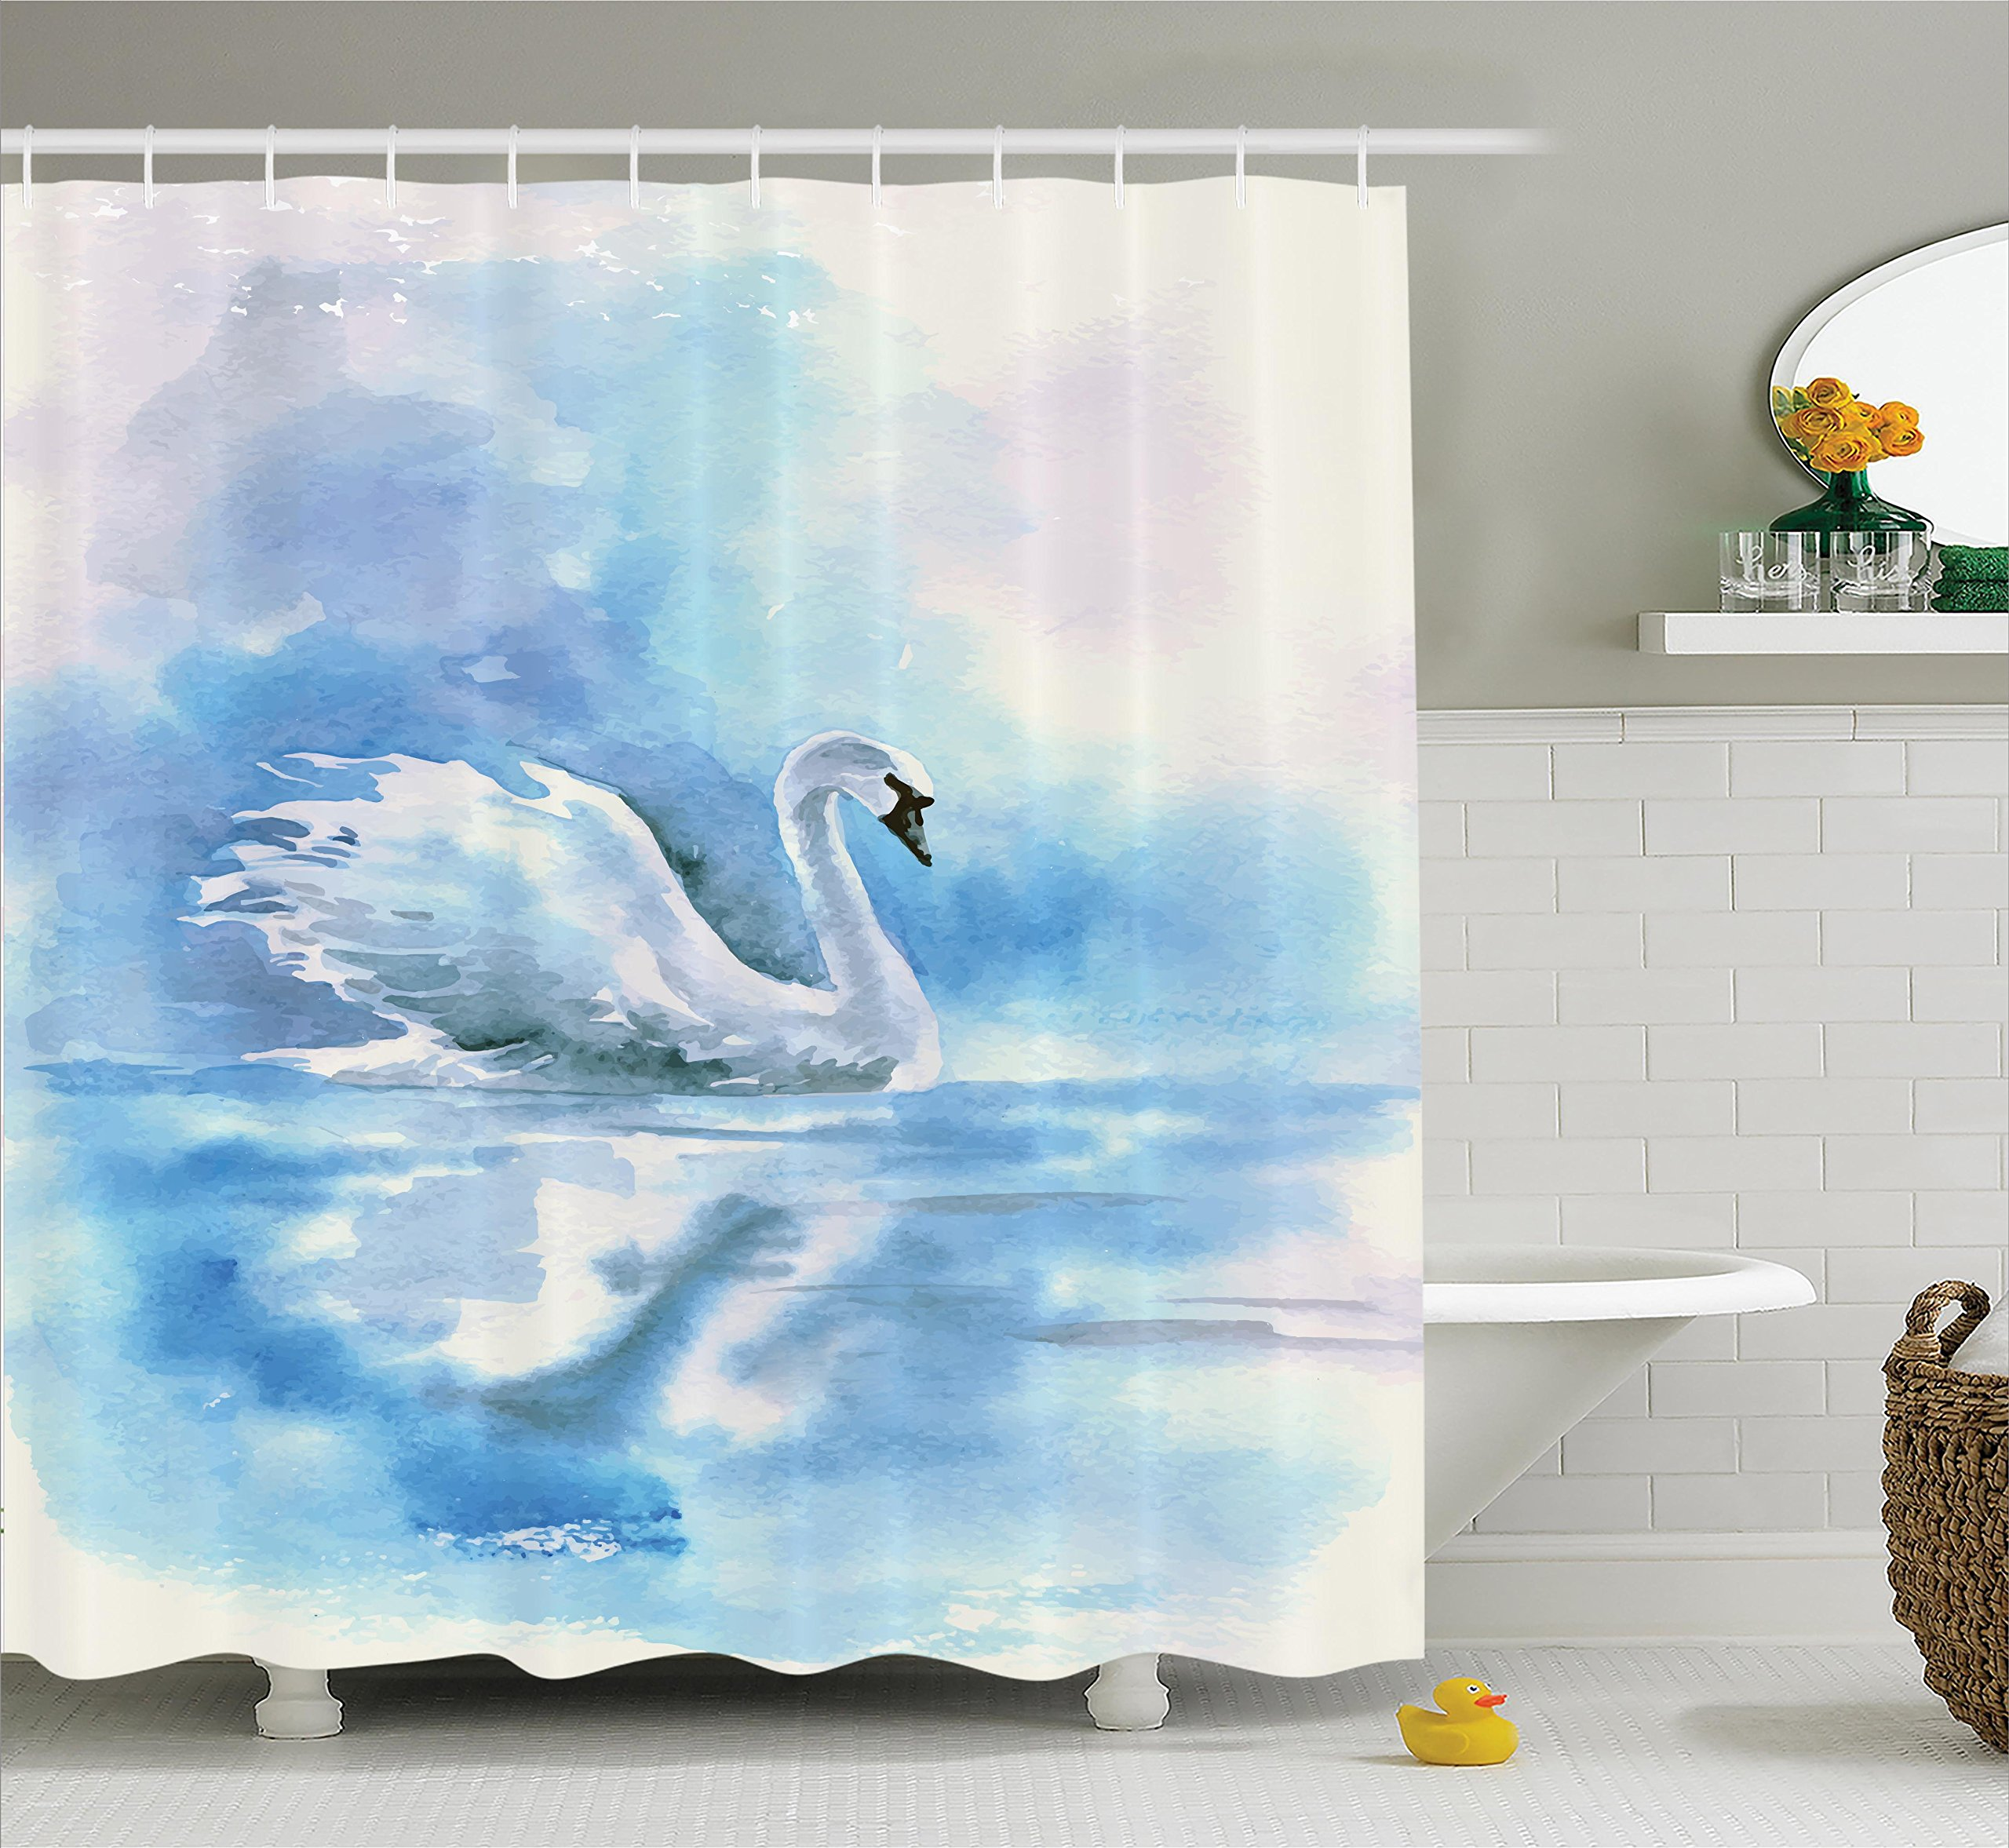 Ambesonne Animal Decor Shower Curtain Set, Watercolor Drawing Picture Of A Swan In The River Hazy Color Aqua Concept Picture Print, Bathroom Accessories, 69W X 70L Inches, Blue White